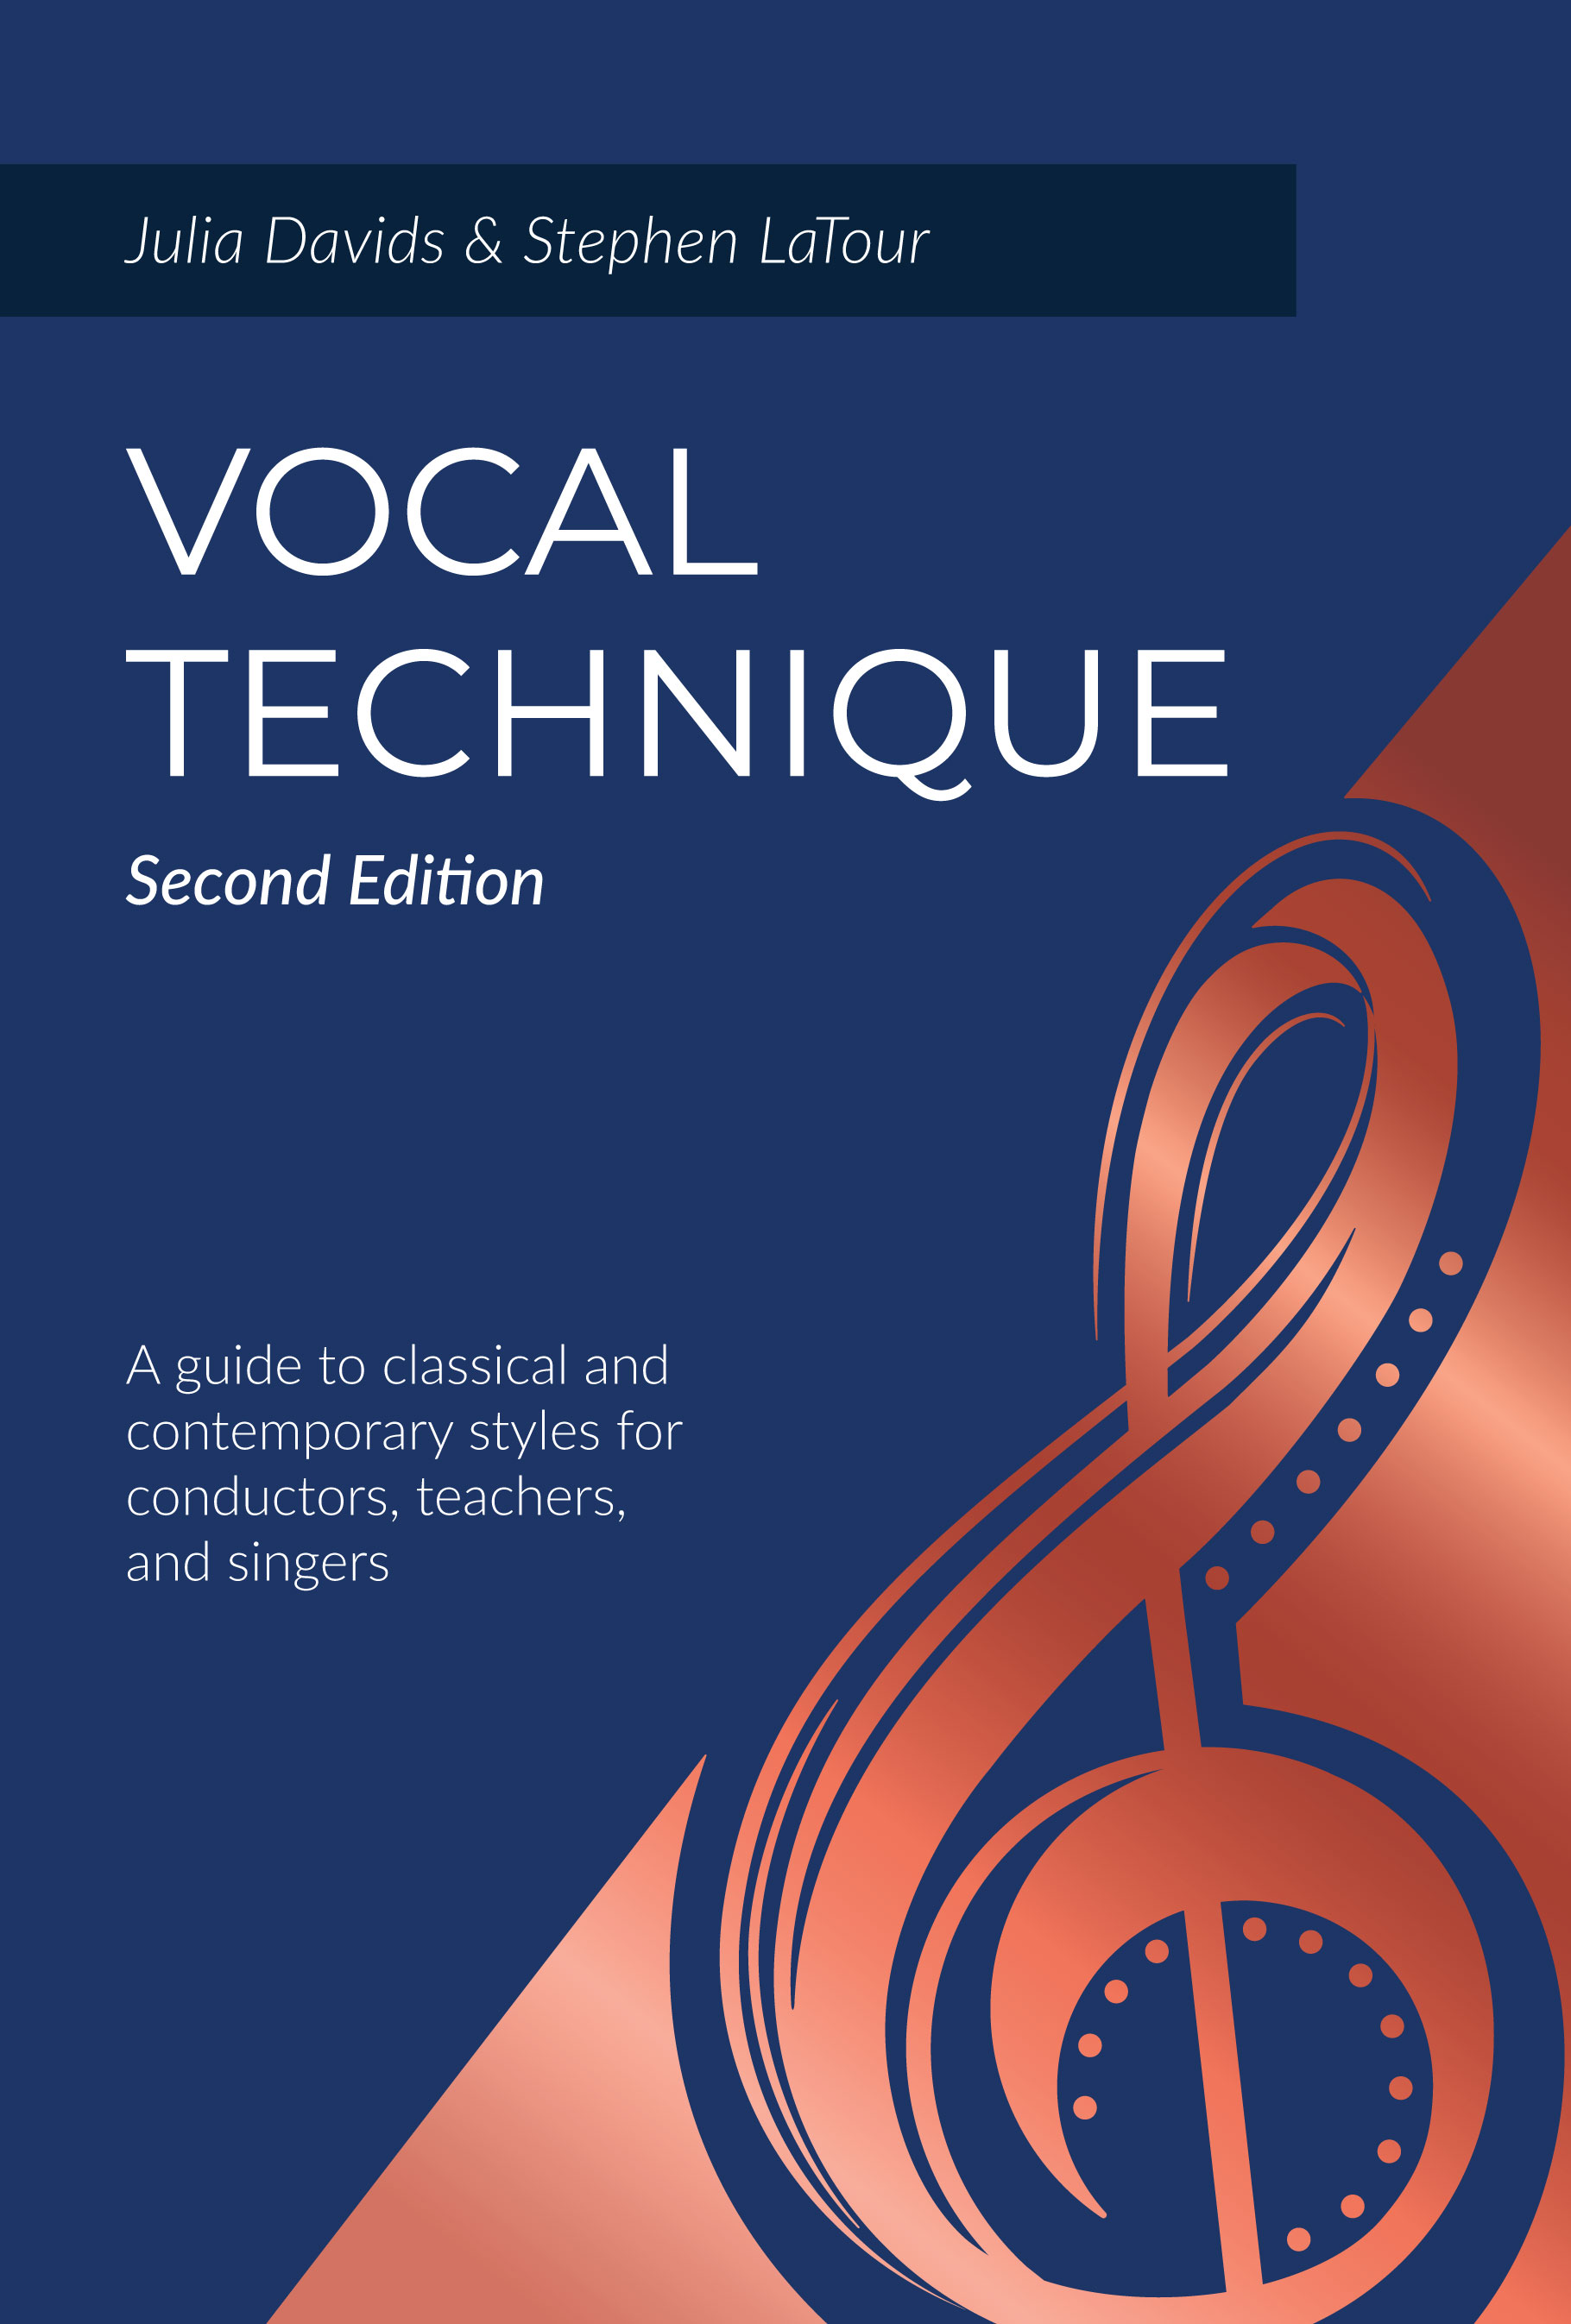 Vocal Technique: A Guide to Classical and Contemporary Styles for Conductors, Teachers, and Singers by Julia  Davids, Stephen  LaTour